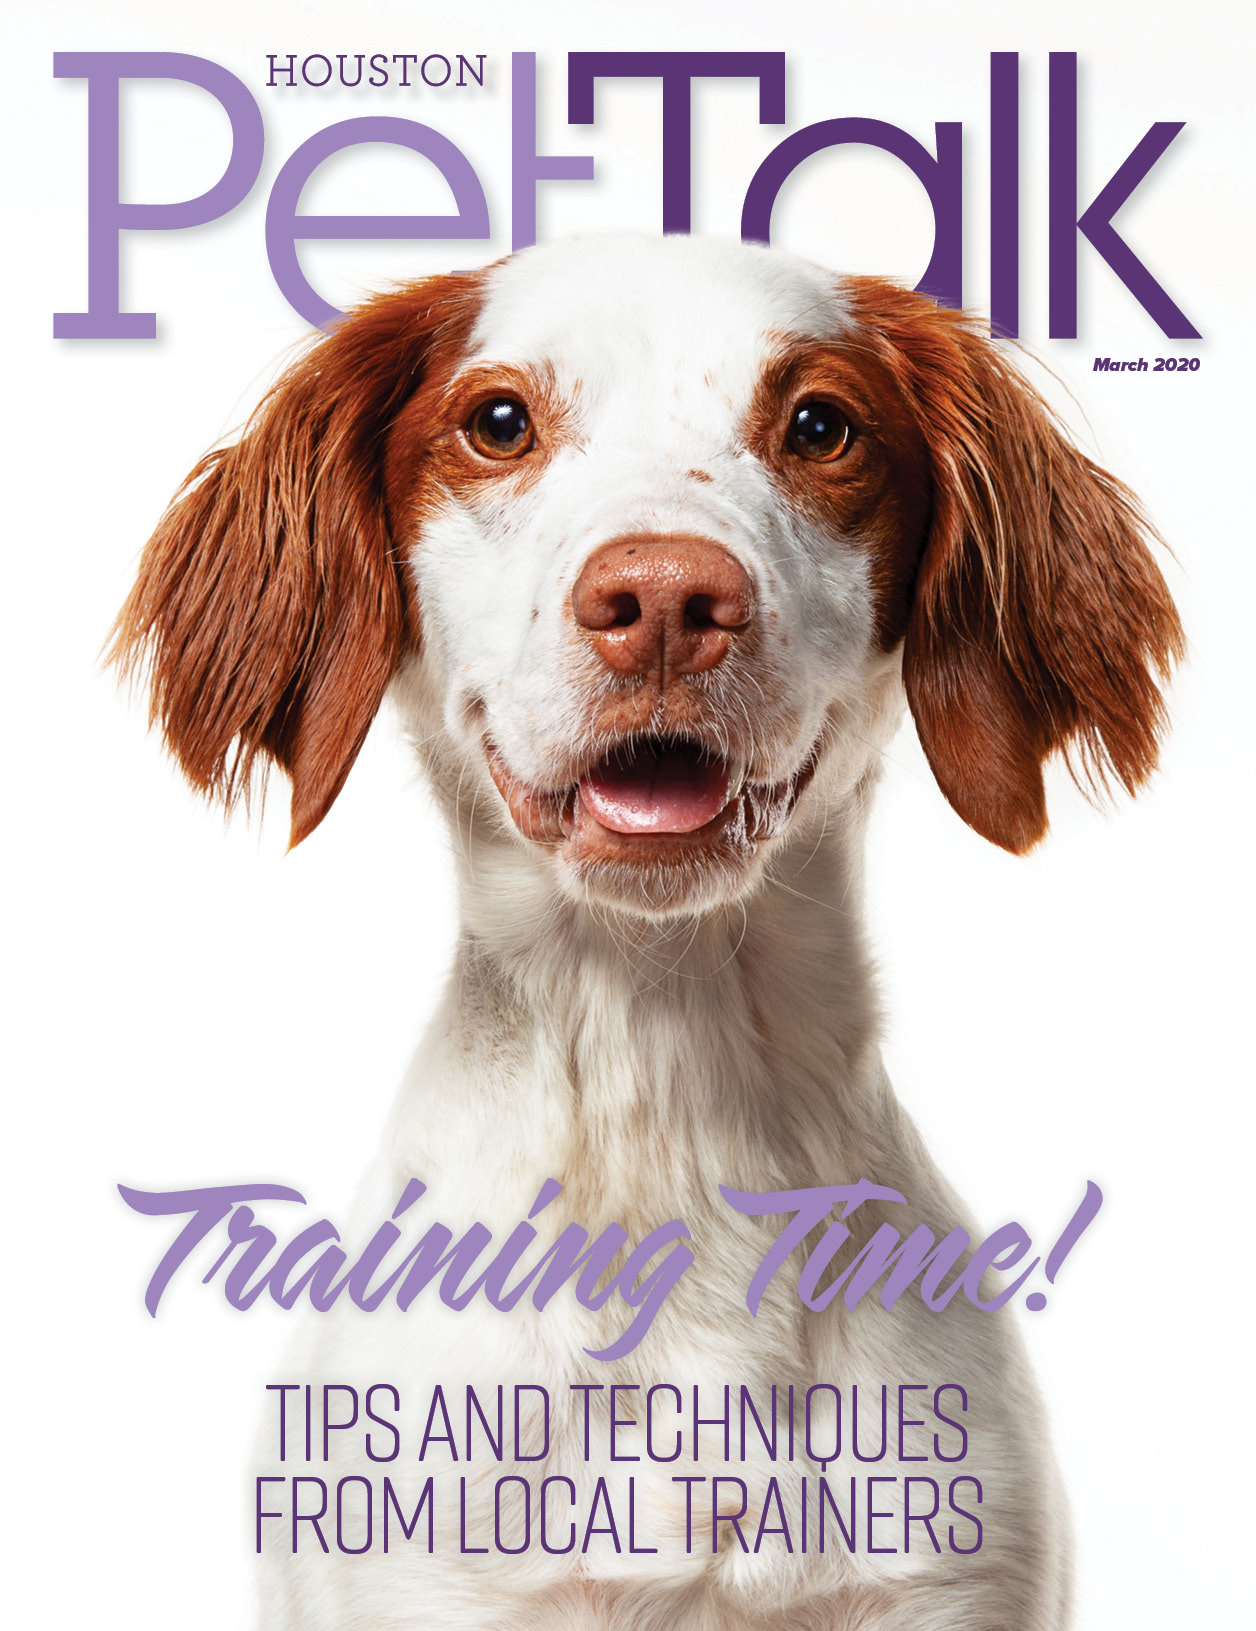 March 2020 Digital Issue of Houston PetTalk